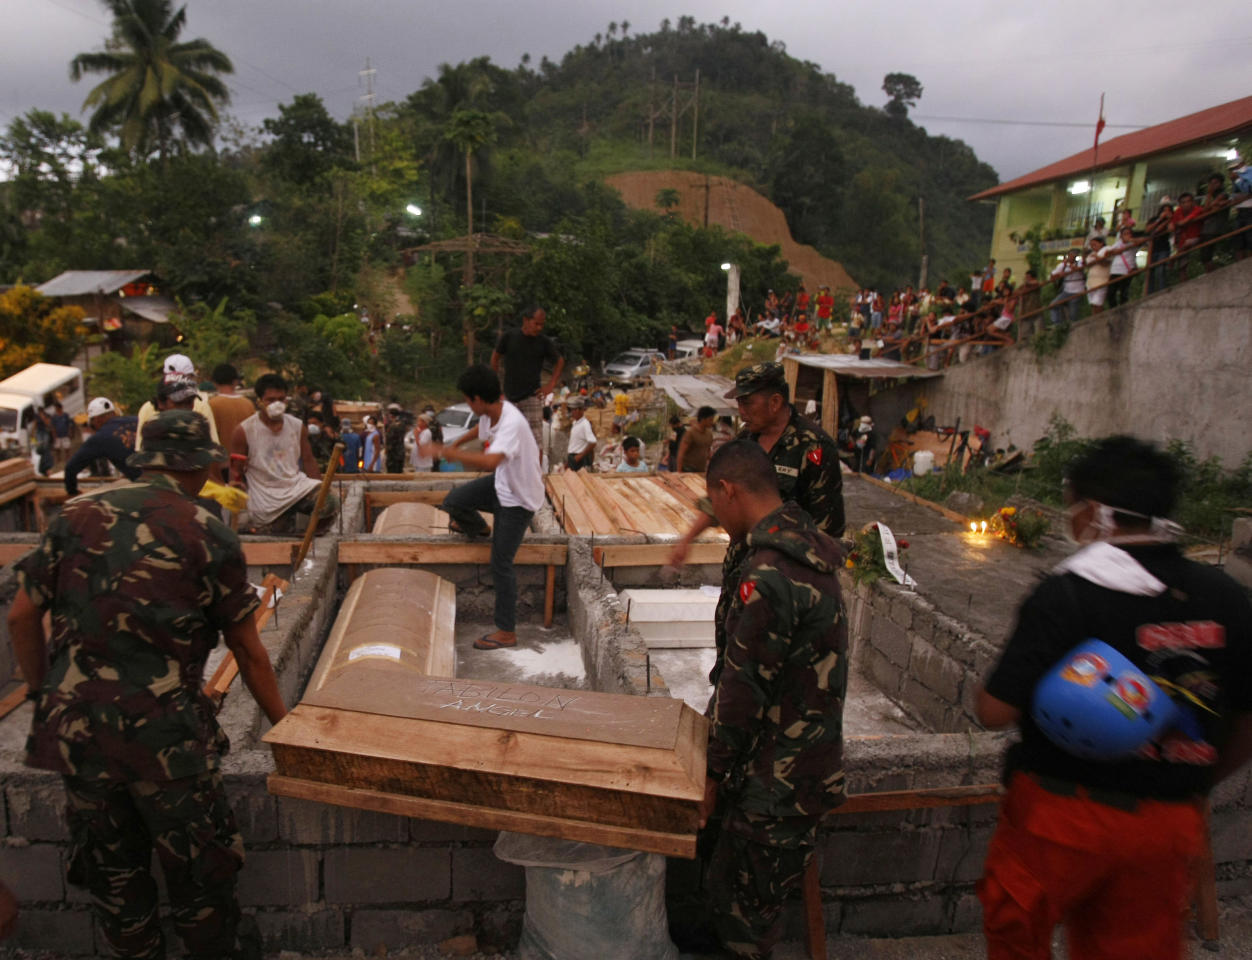 Soldiers carry coffins of flash flood victims during a mass burial Tuesday Dec. 20, 2011 at a public cemetery in Iligan city in southern Philippines. Dozens of grieving relatives of the victims wept openly during funeral rites presided by a Catholic bishop at nightfall in the city. (AP Photo/Bullit Marquez)